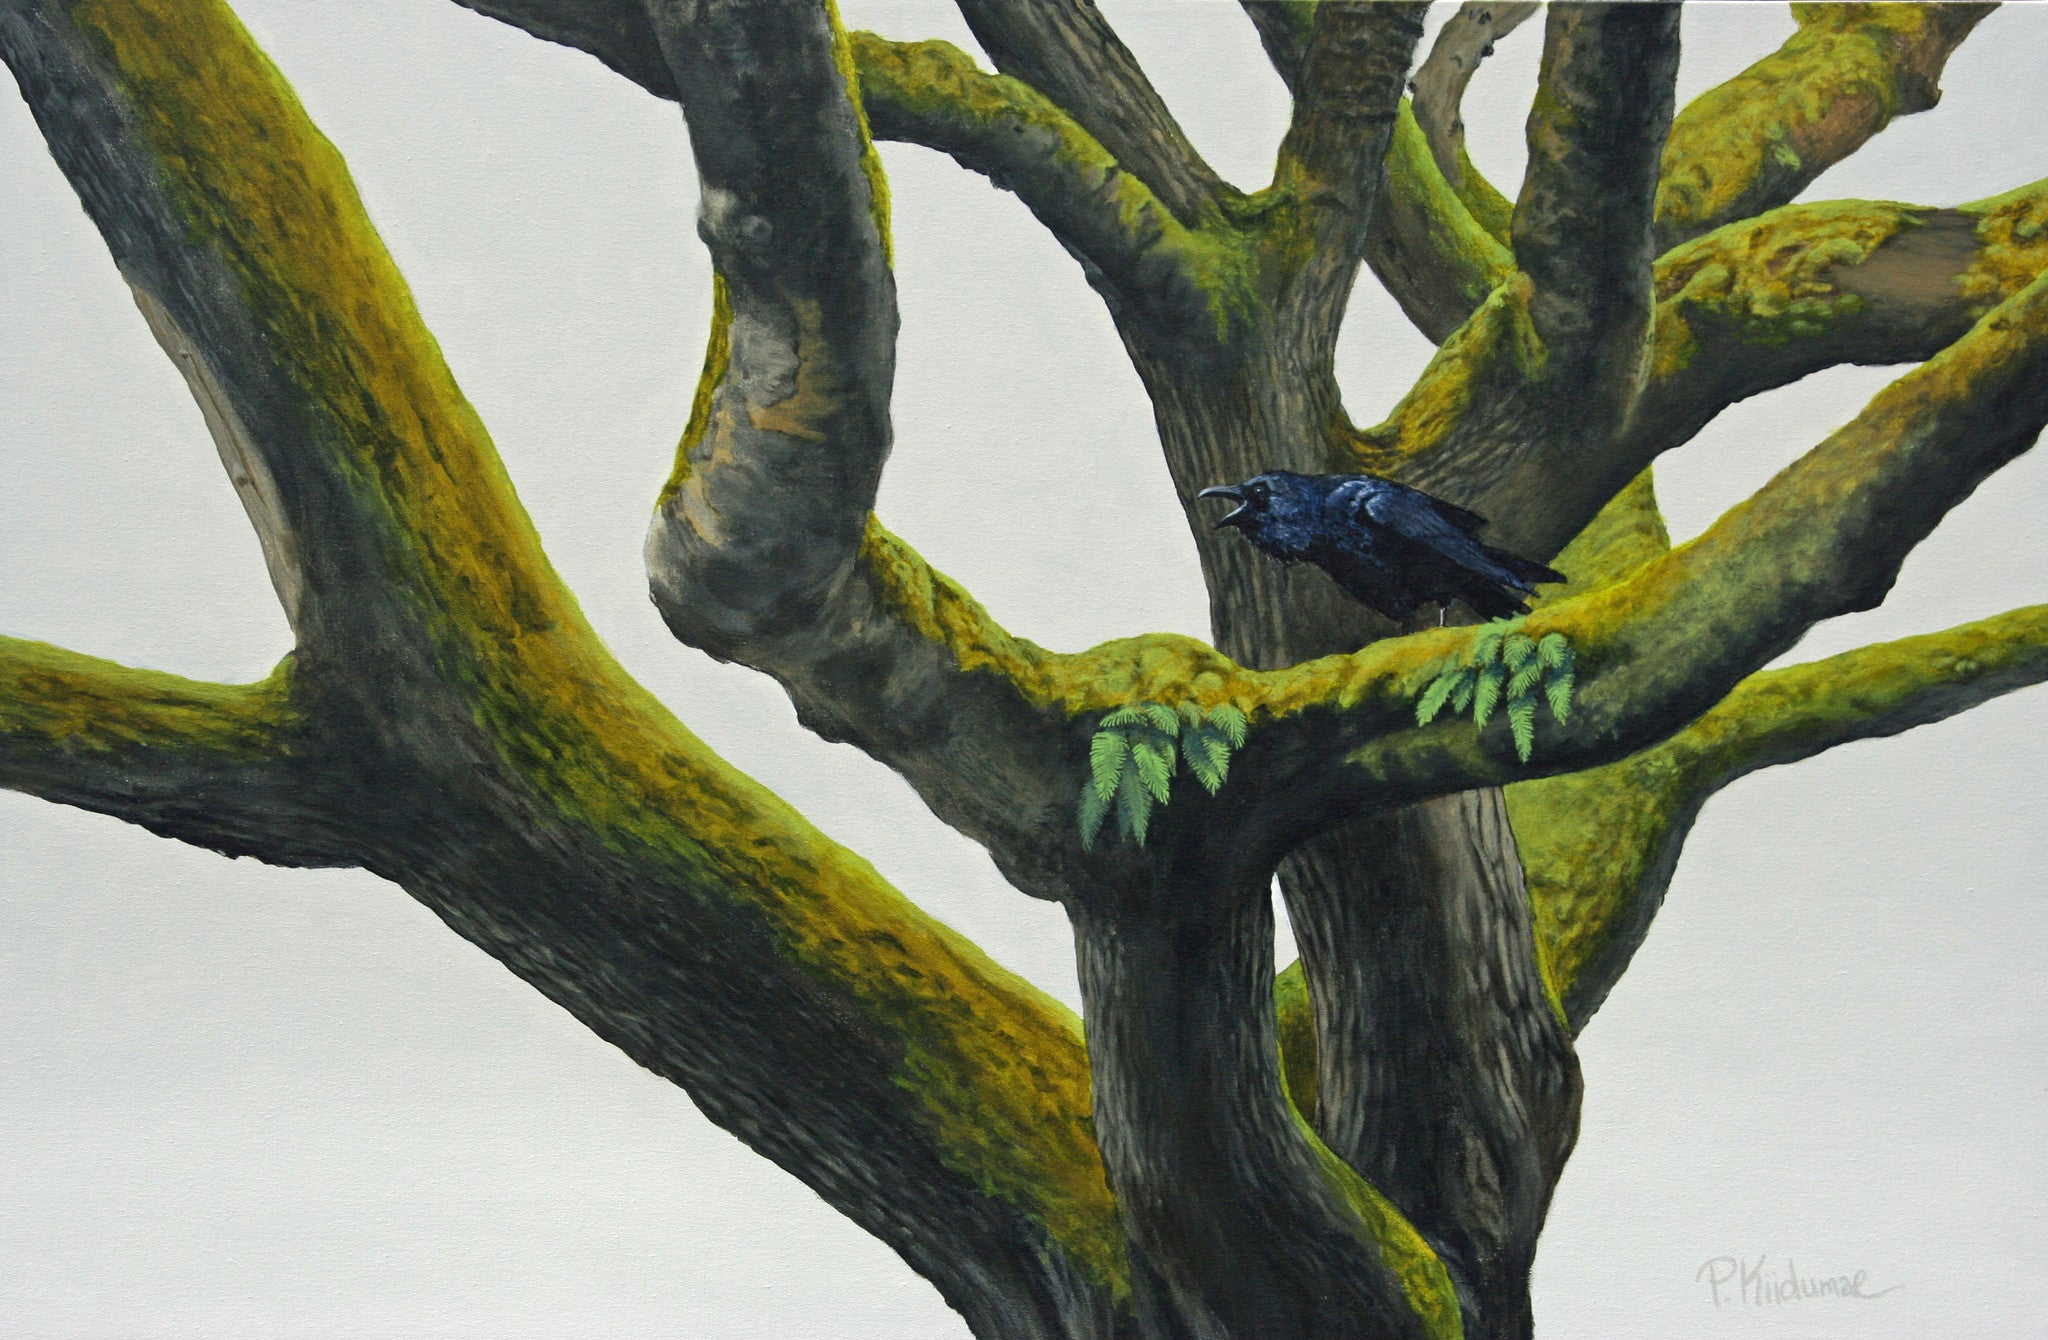 Raven Tree by Peter Kiidumae